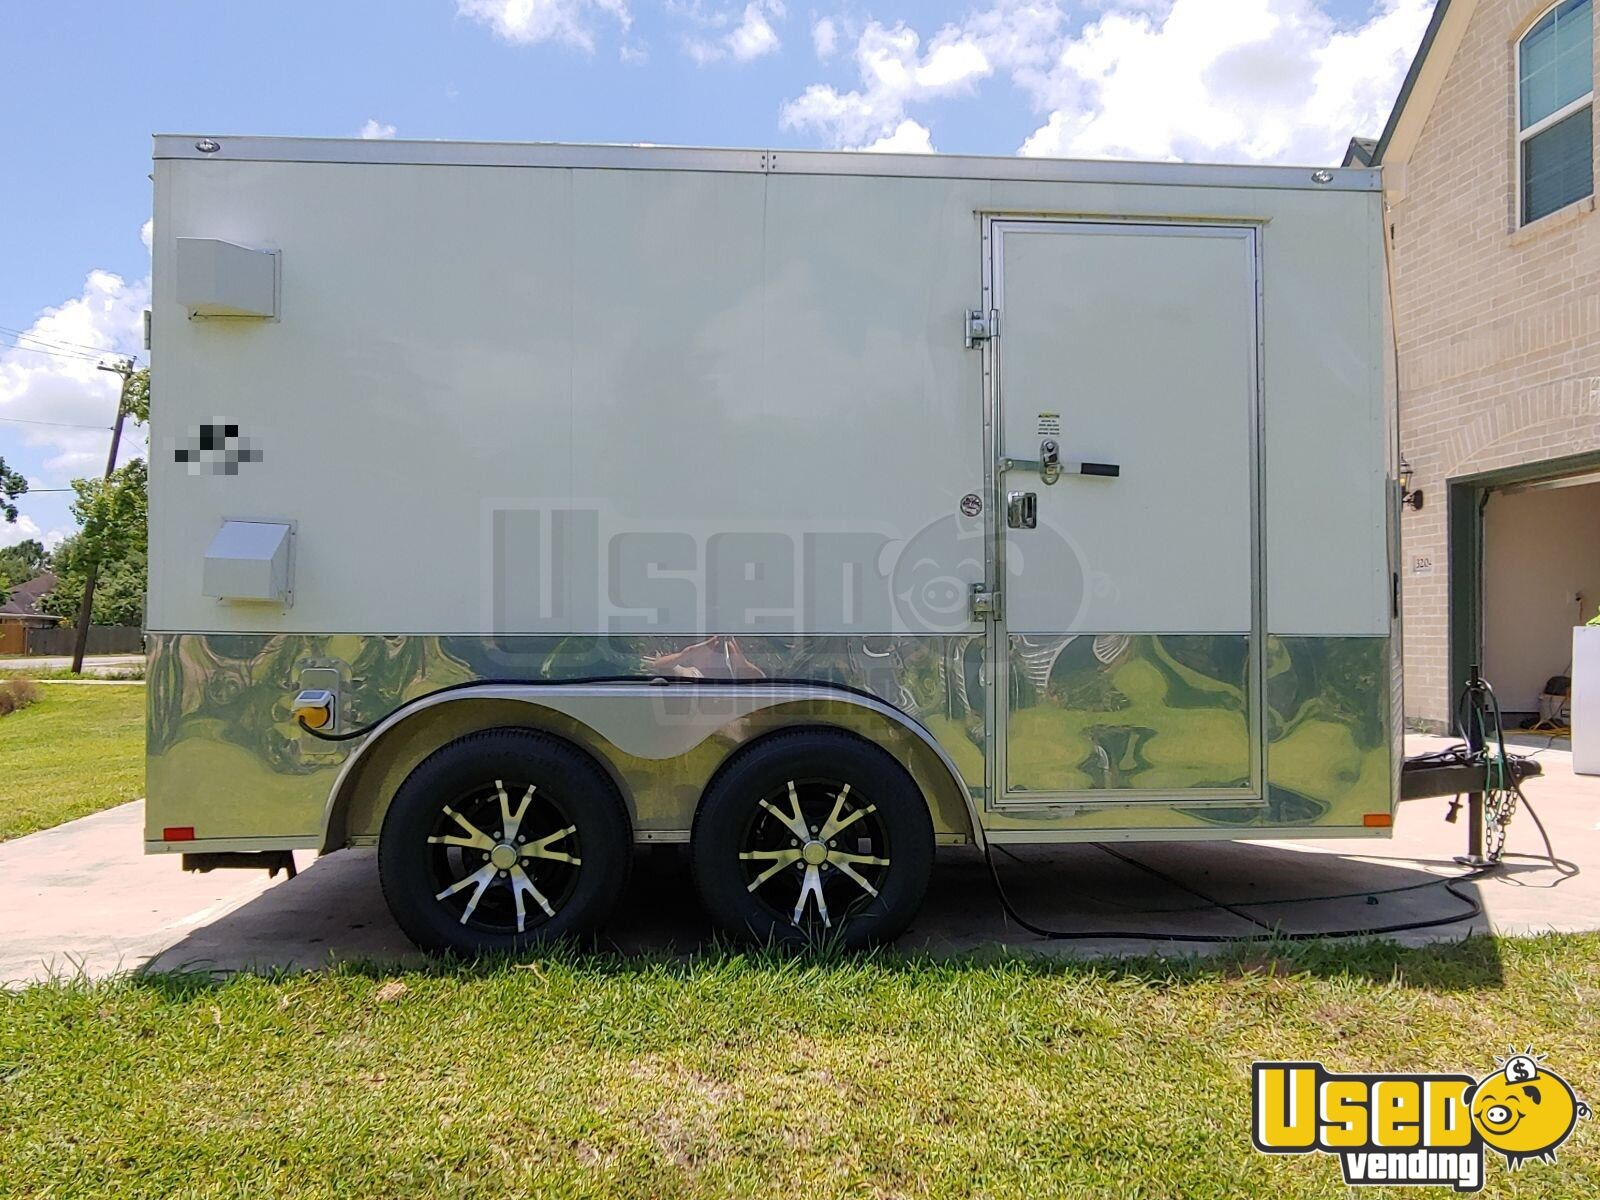 2018 Spartan 7x12 Ice Cream Truck Generator Texas for Sale - 4